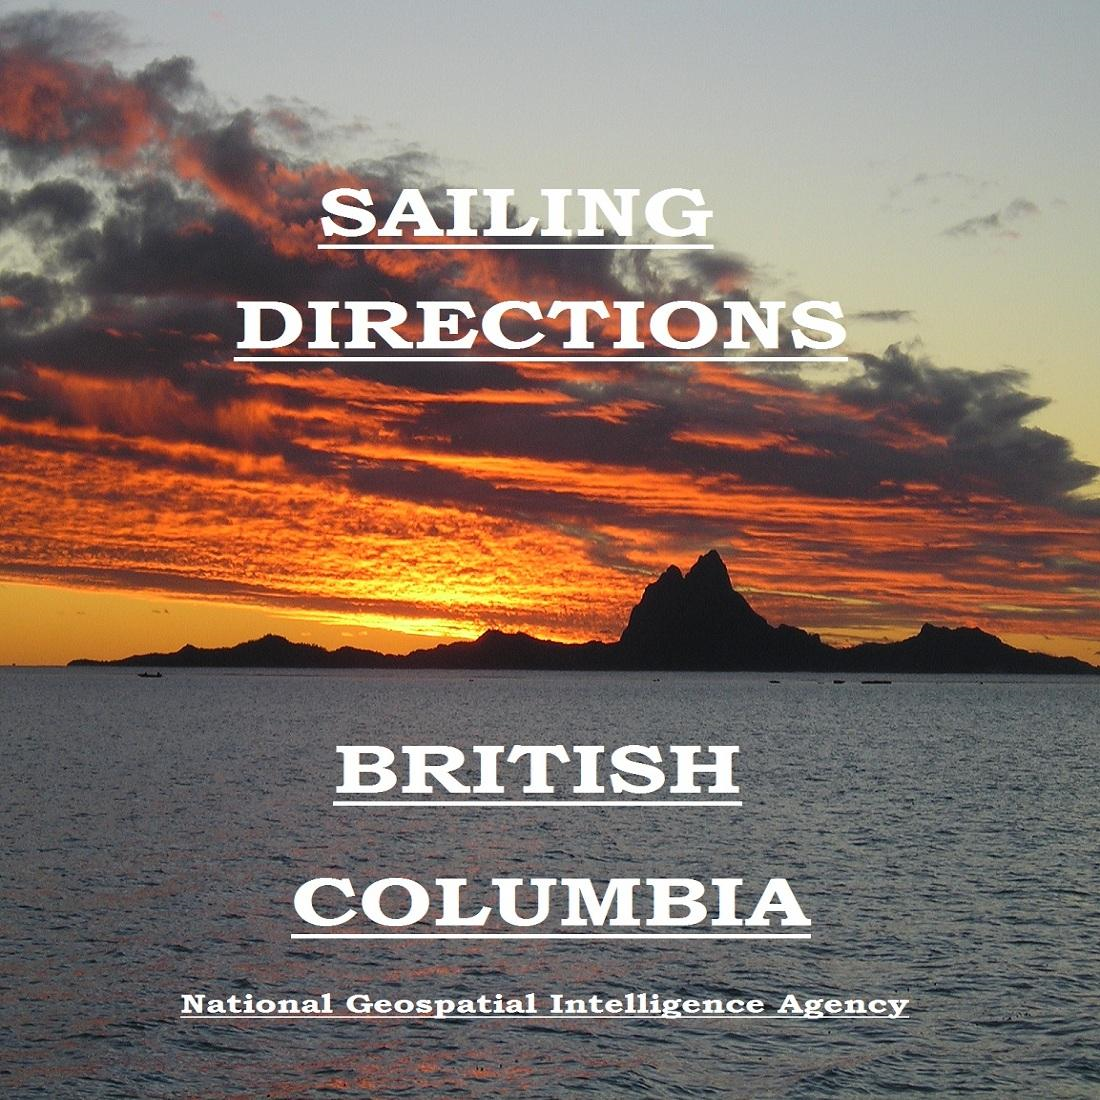 Sailing Directions - British Columbia